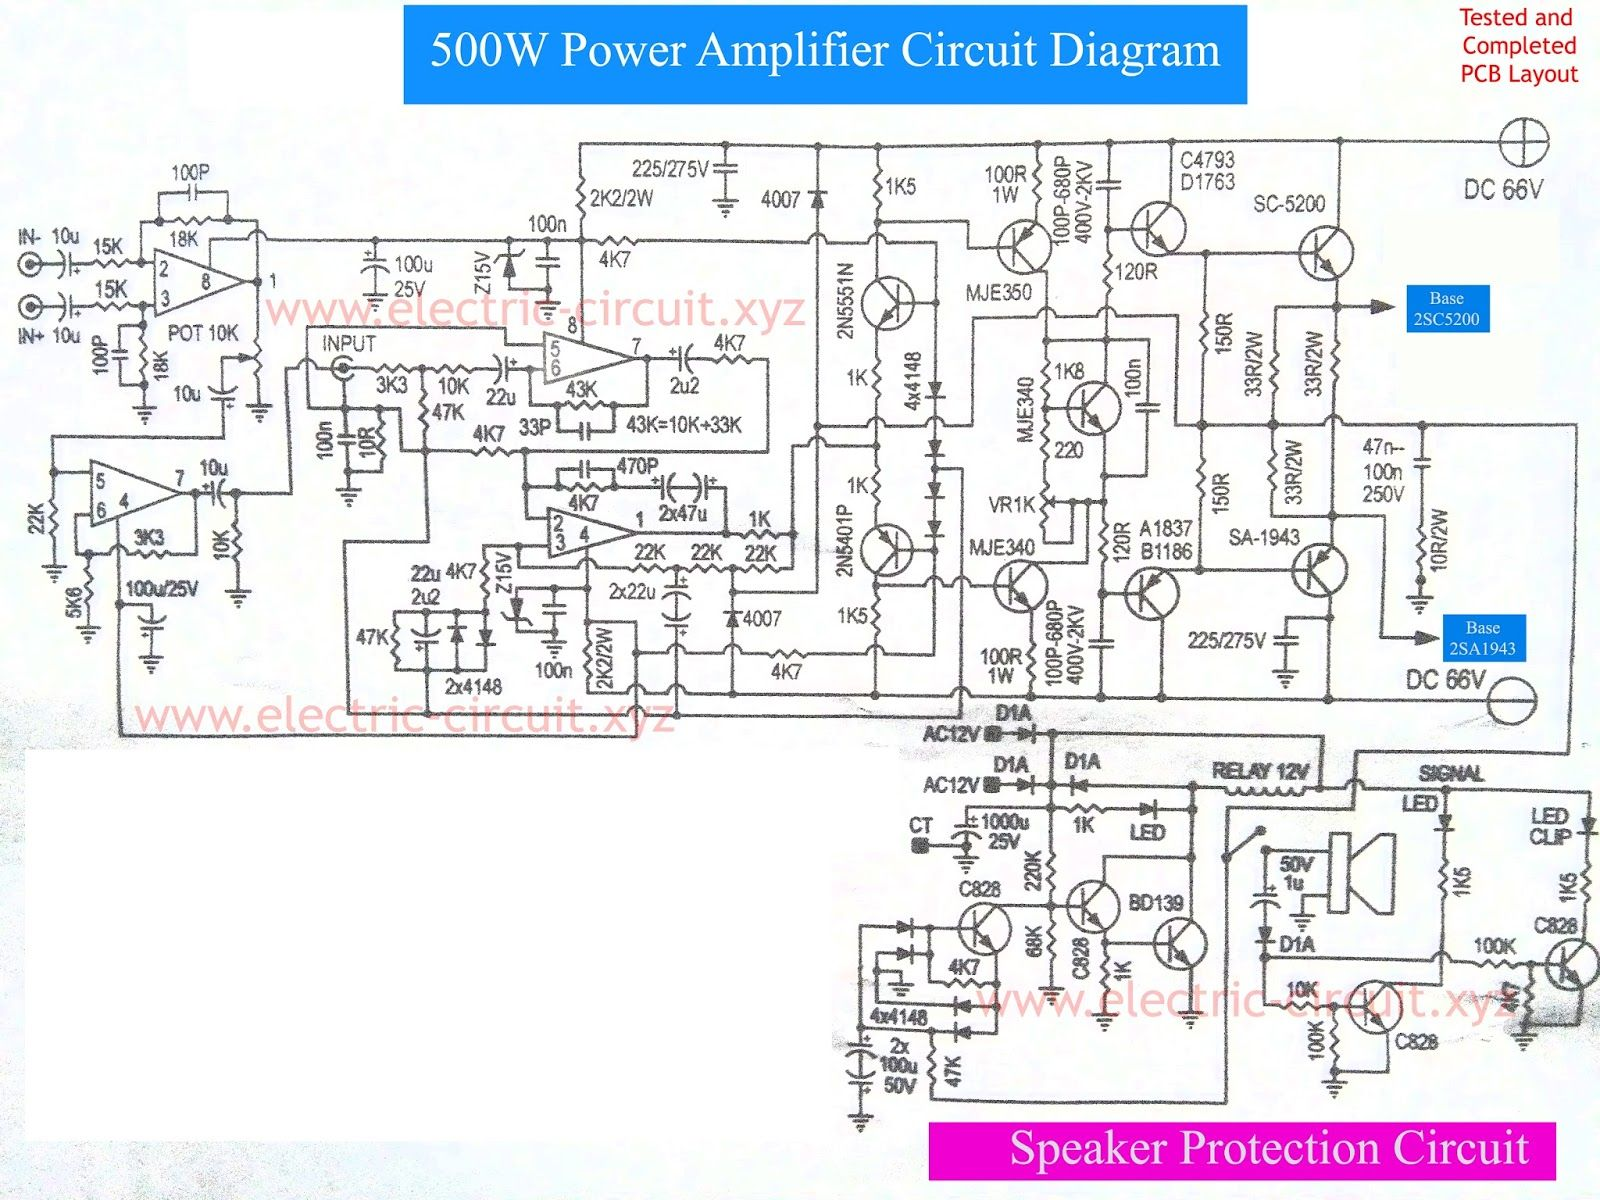 power amplifier 500w with speaker protection circuit diagram [ 1600 x 1200 Pixel ]